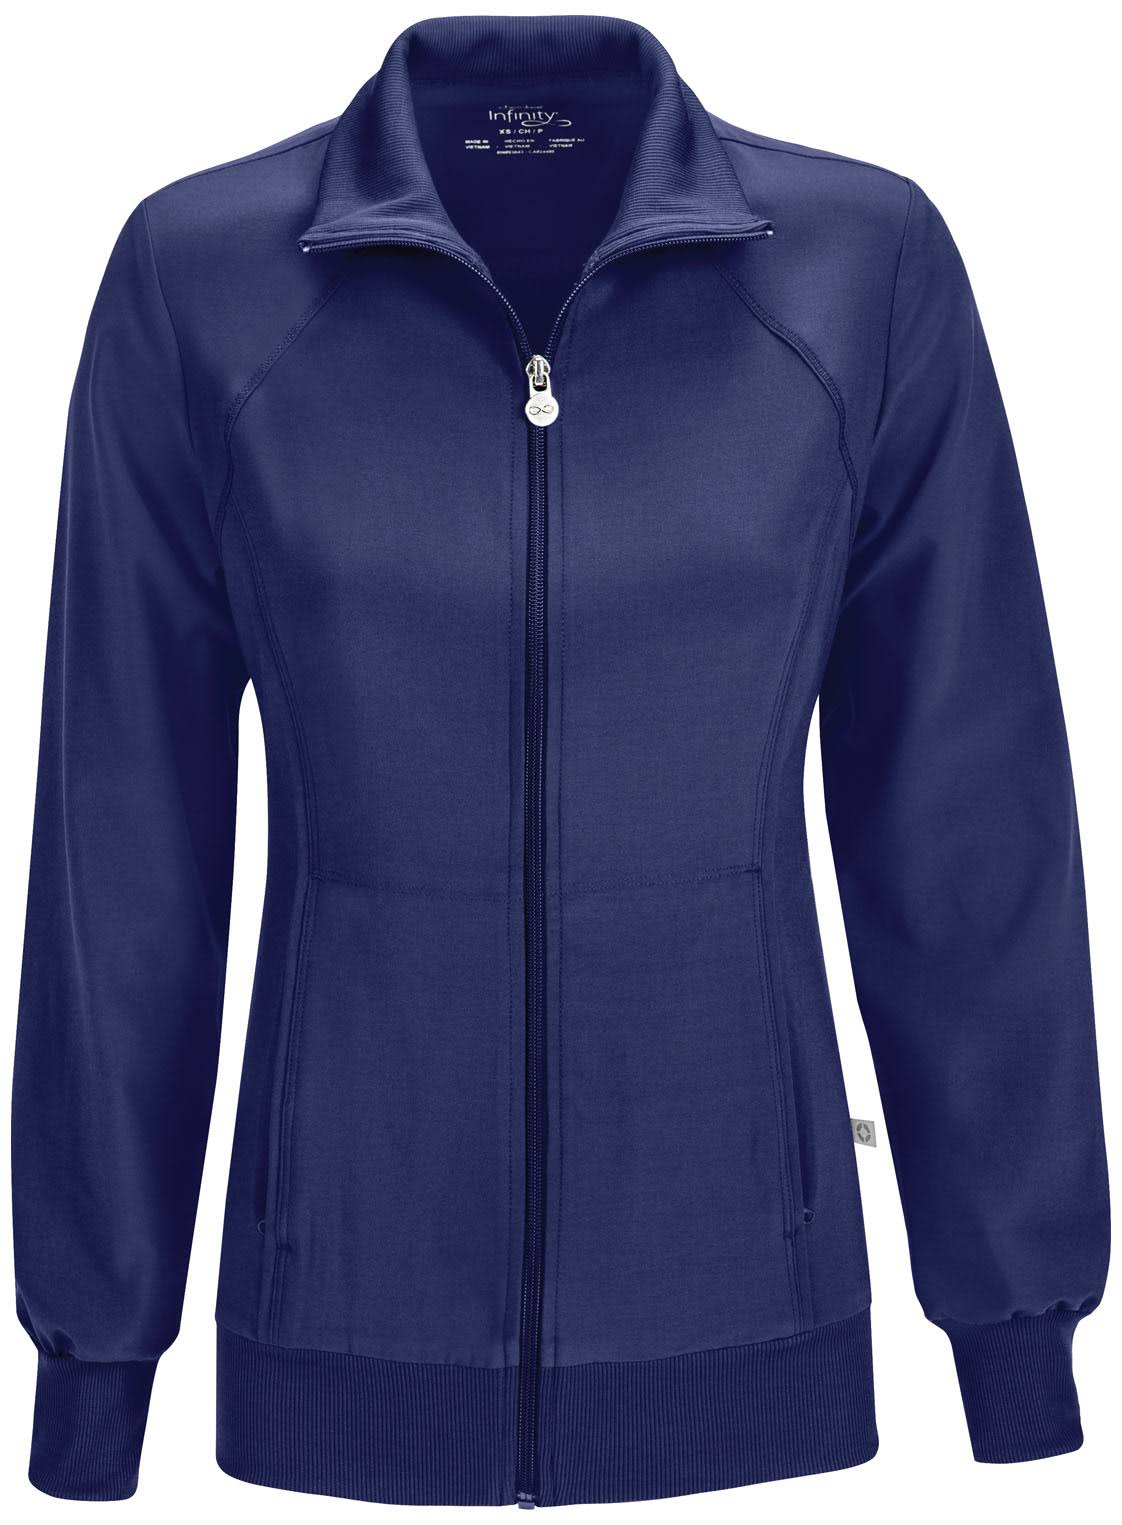 Cherokee Zip Front Warm Up Jacket - Navy, X-Large